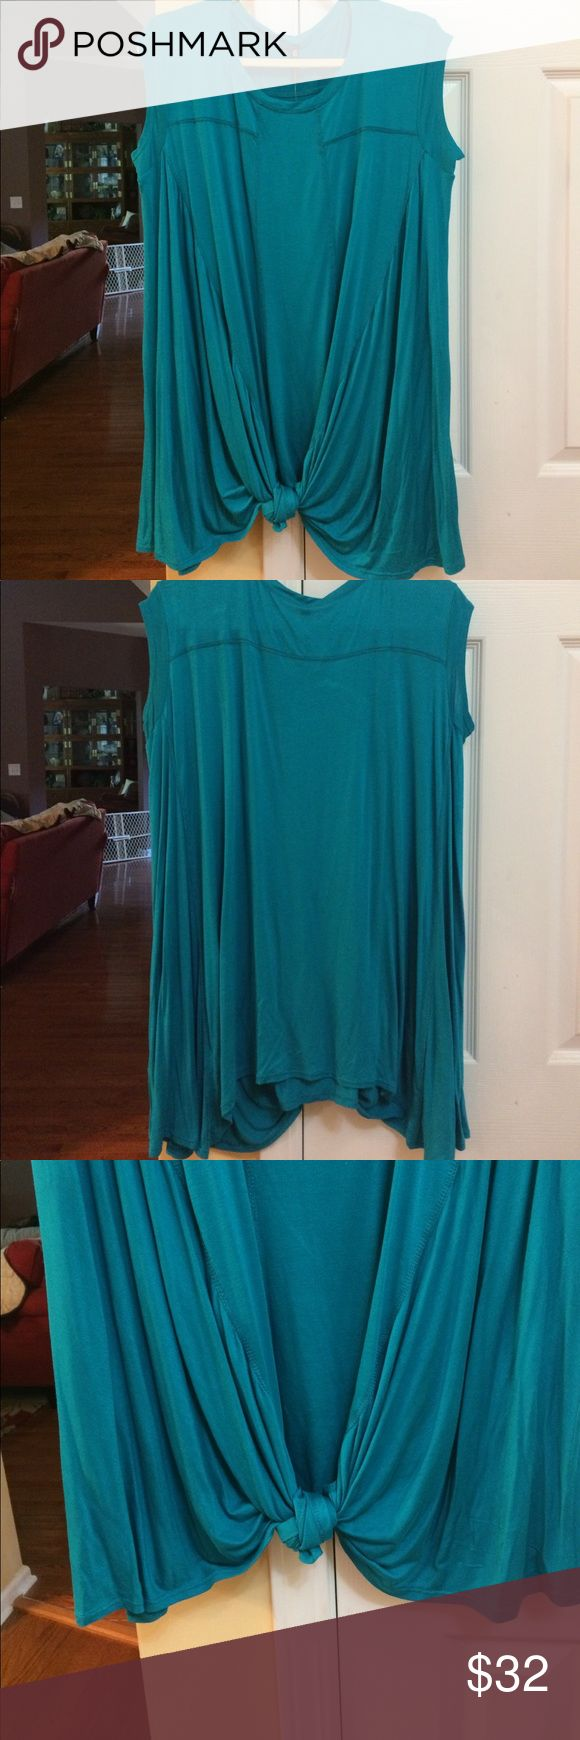 Branches btq turquoise med top/dress.  NWT Branches btq medium turquoise top, rayon & spandex. Super soft. Great with jeans or leggings. NWT. Armit/bust measures about 18 laying flat, length is about 32 inches. Stretchy Branches btq Tops